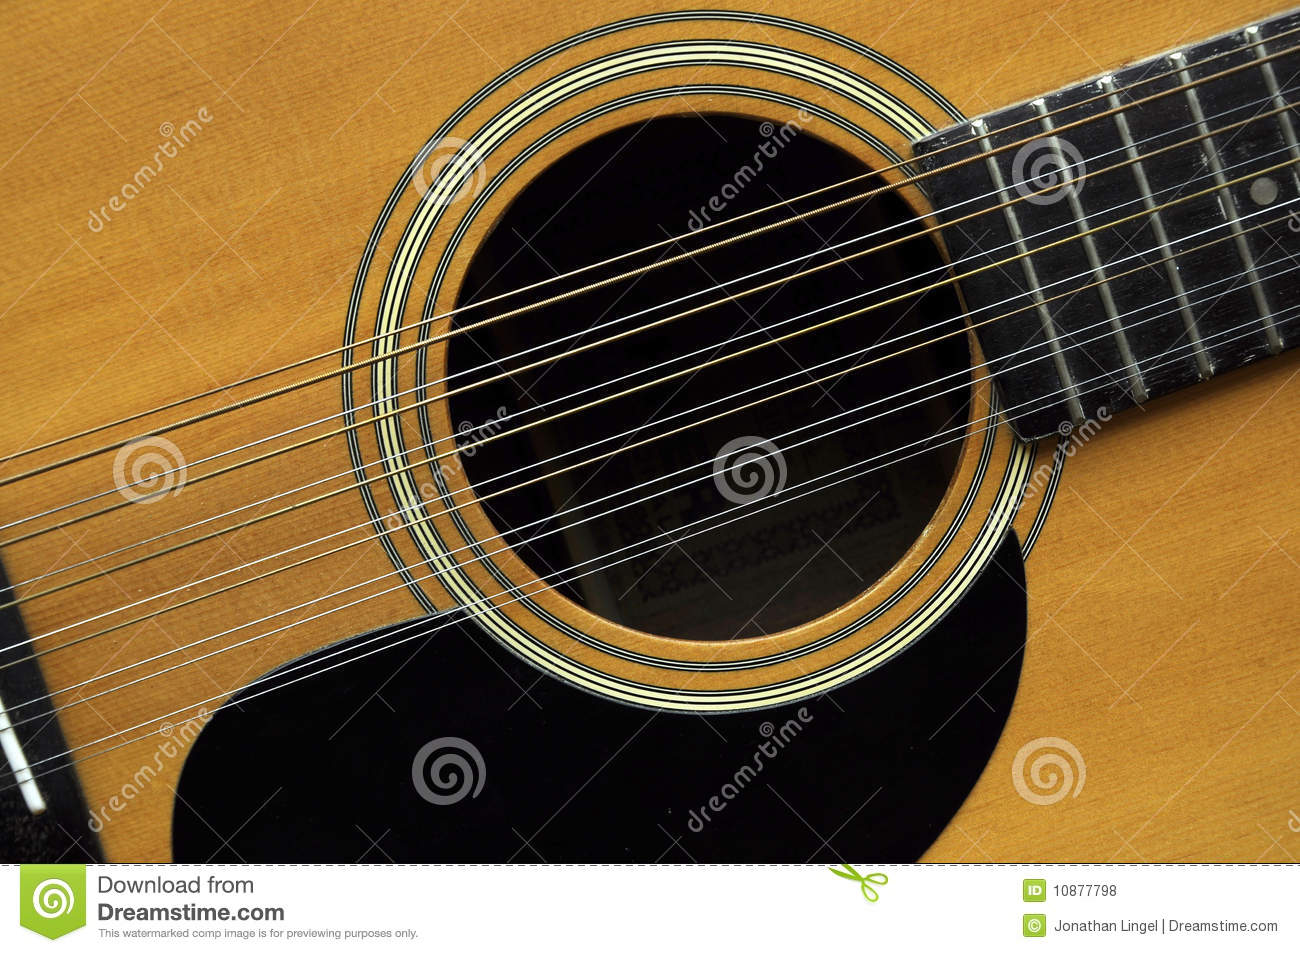 12-string Guitar Royalty Free Stock Photos - Image: 10877798